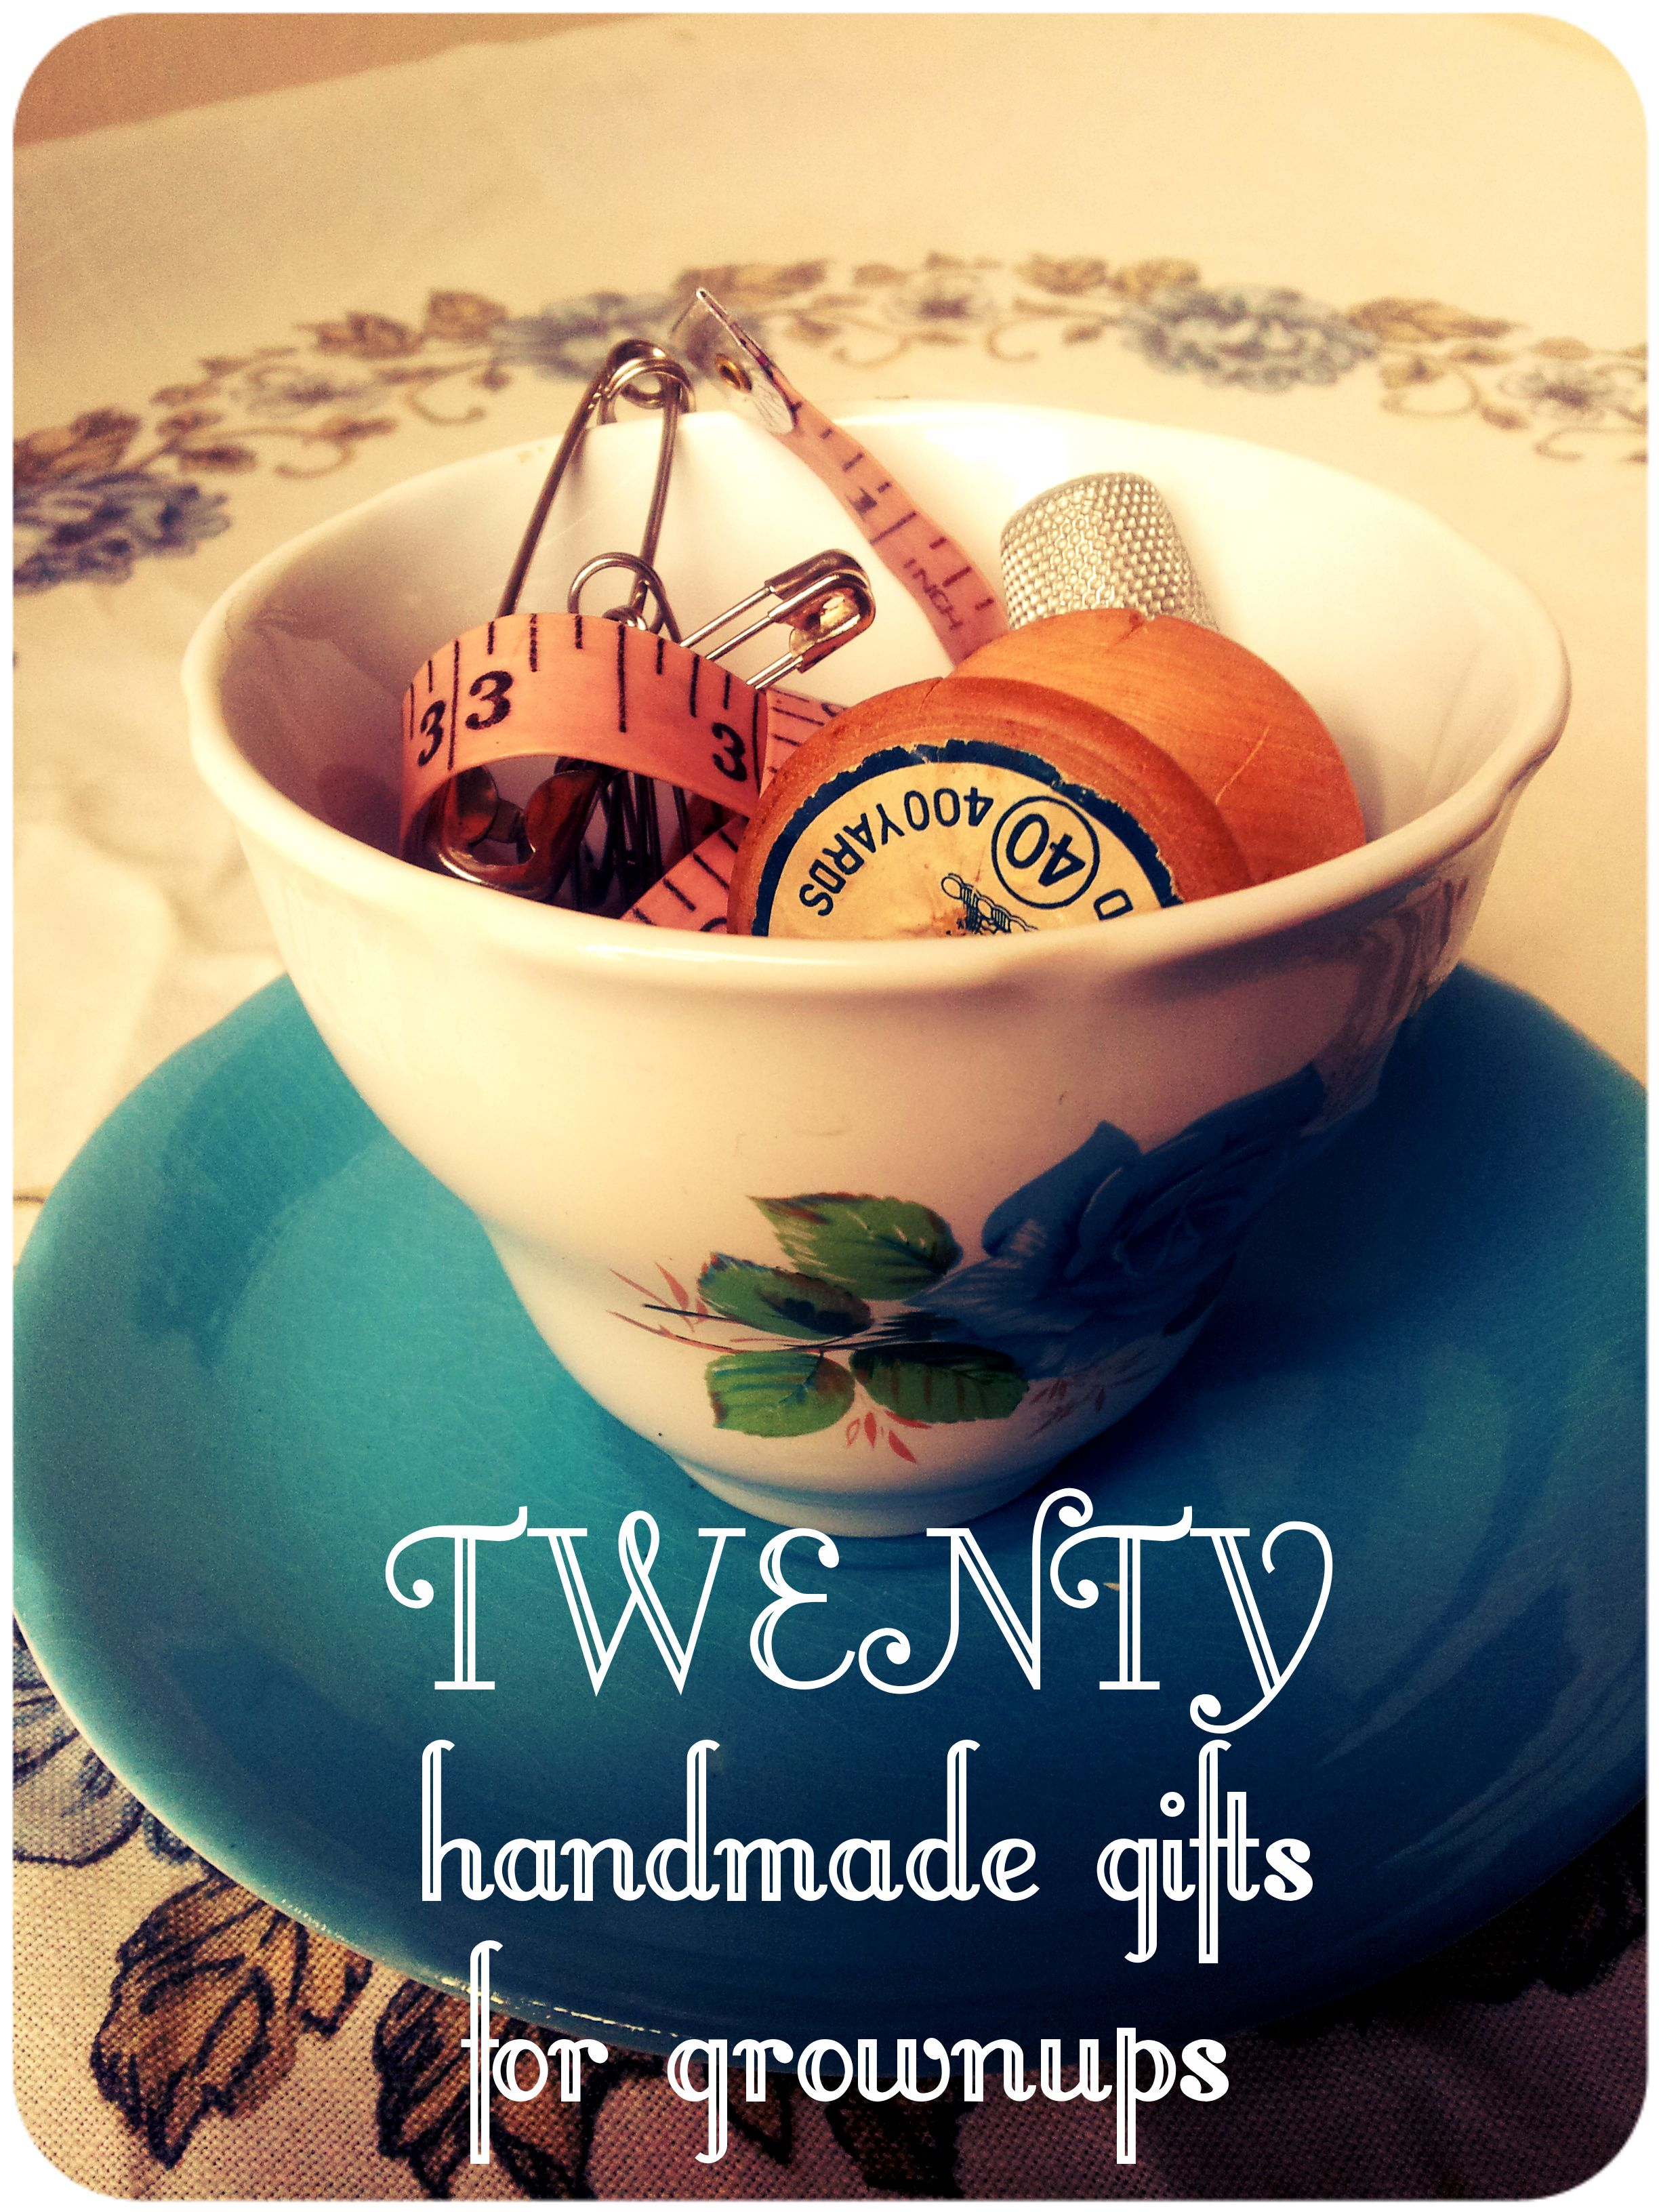 20 handmade gifts for grown ups lulastic and the